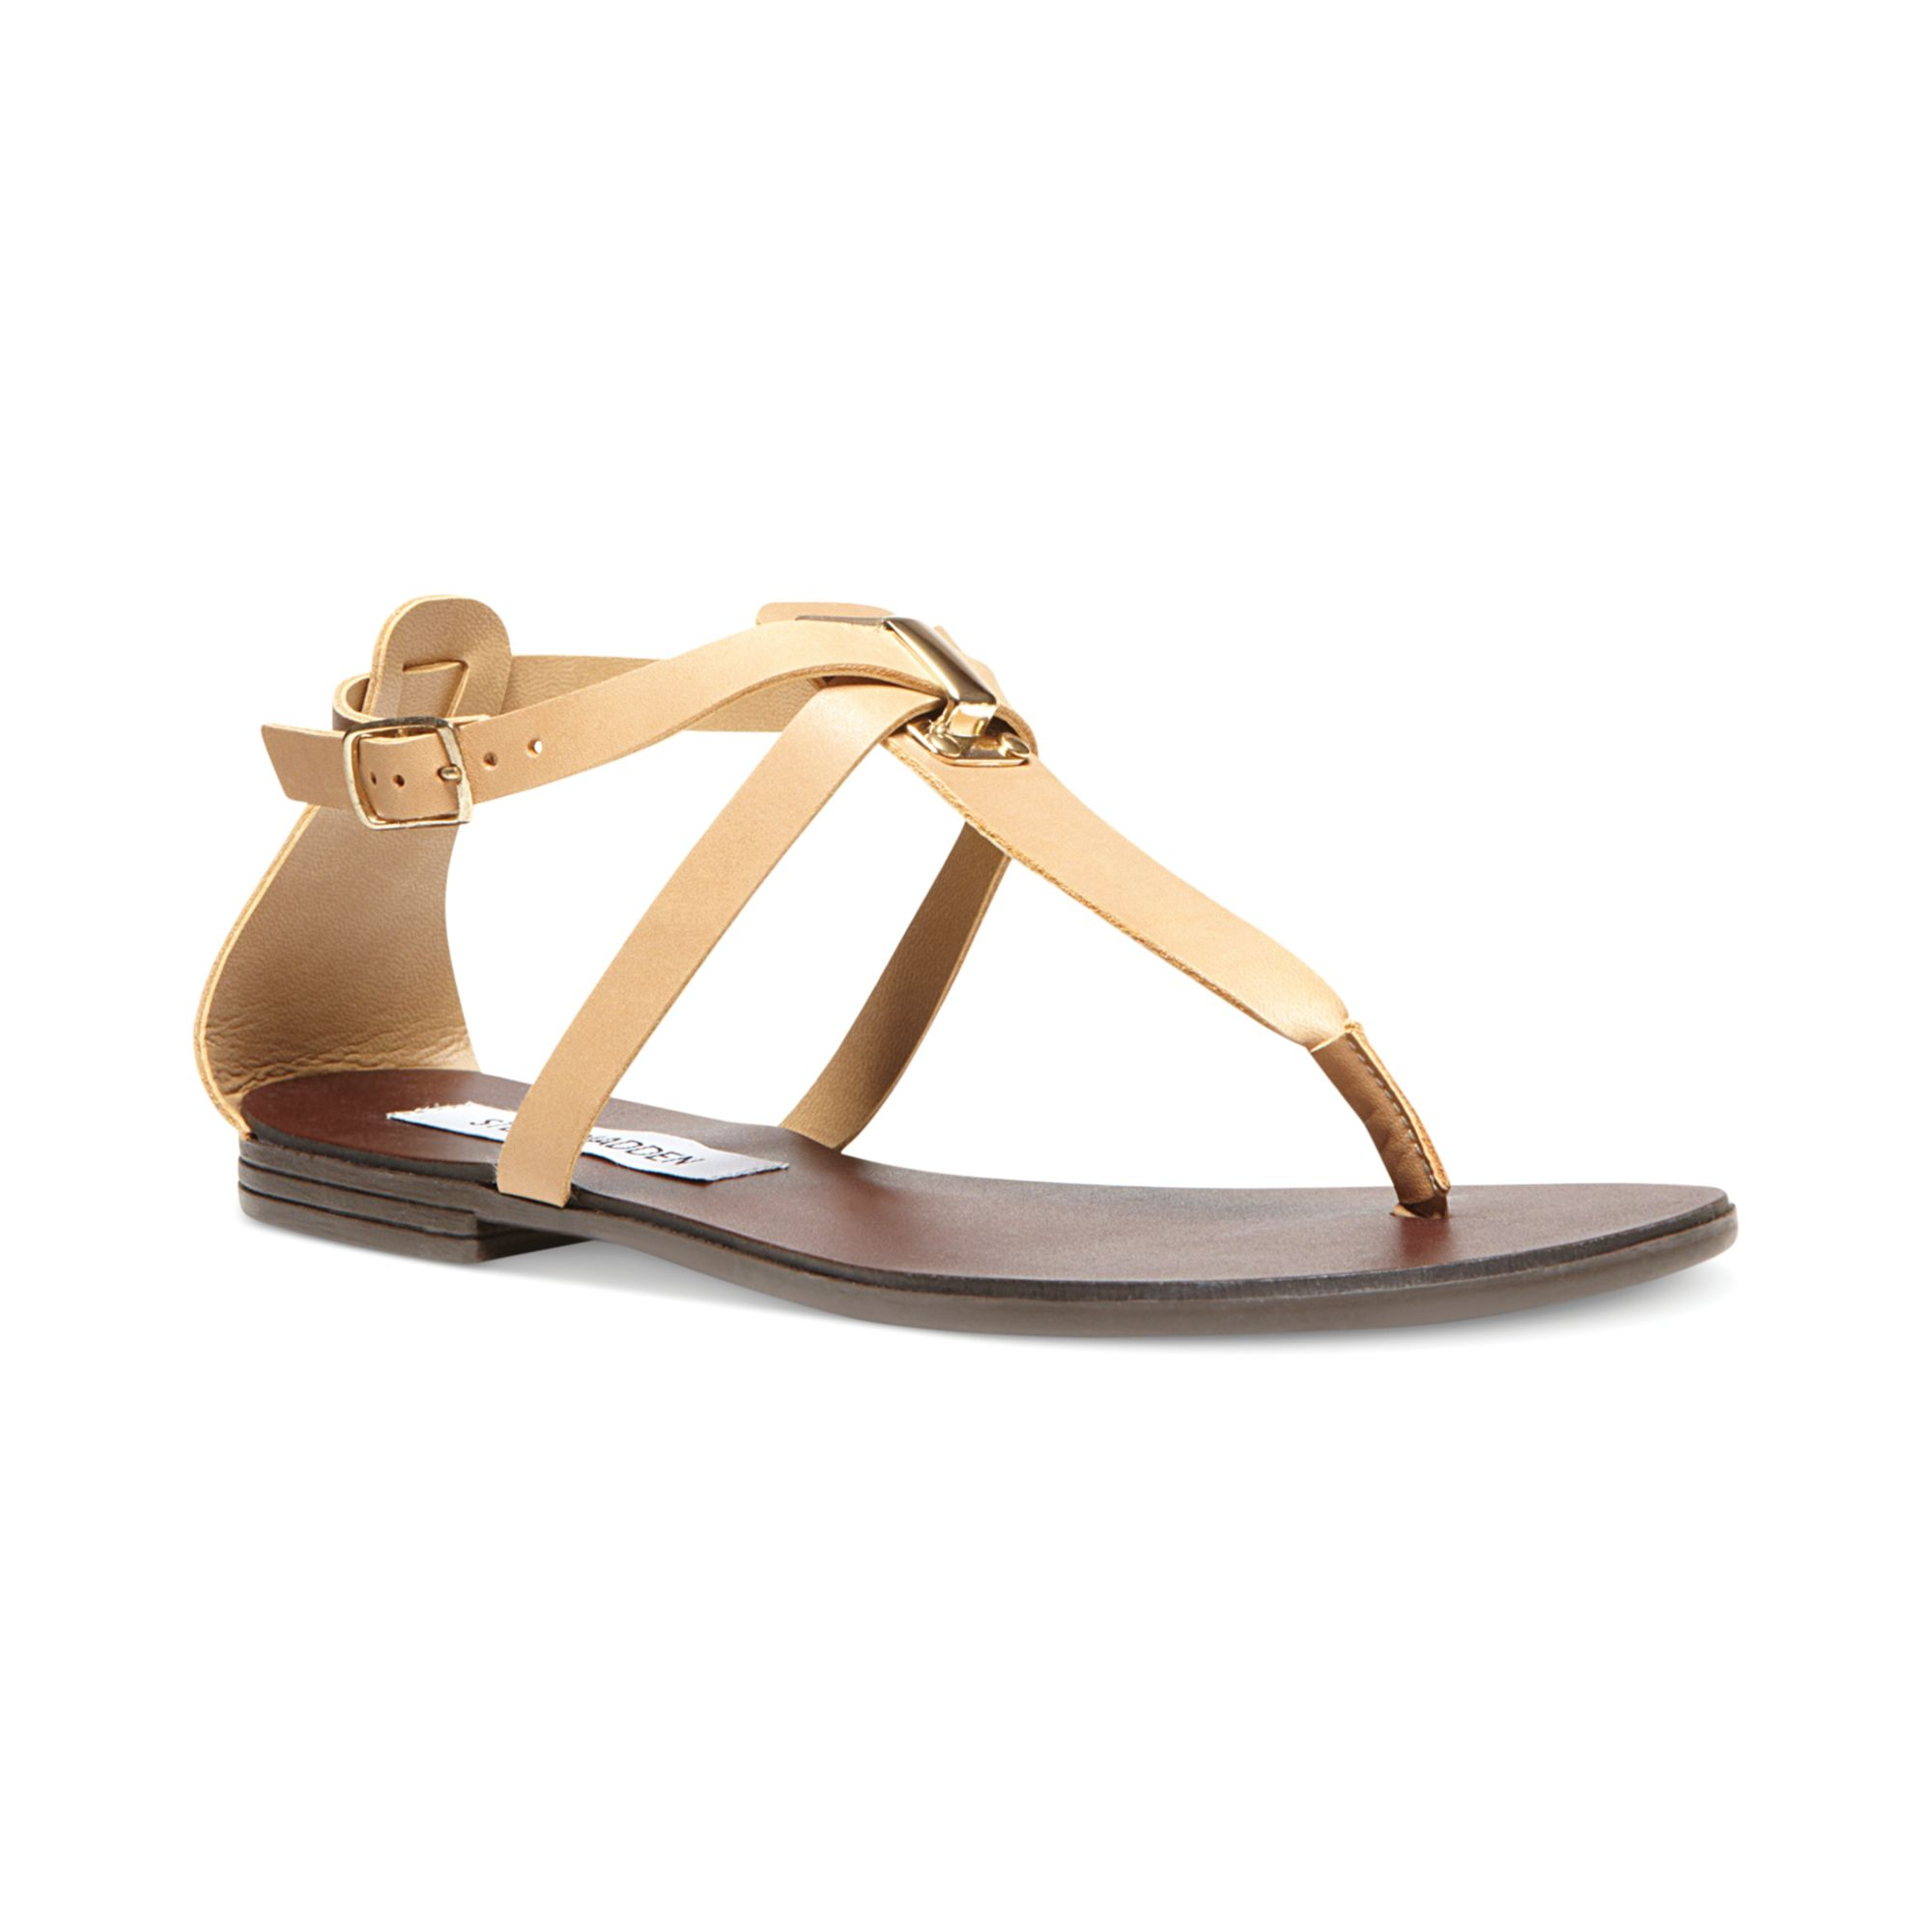 aad13f38d Steve Madden Kween Flat Thong Sandals in Natural - Lyst